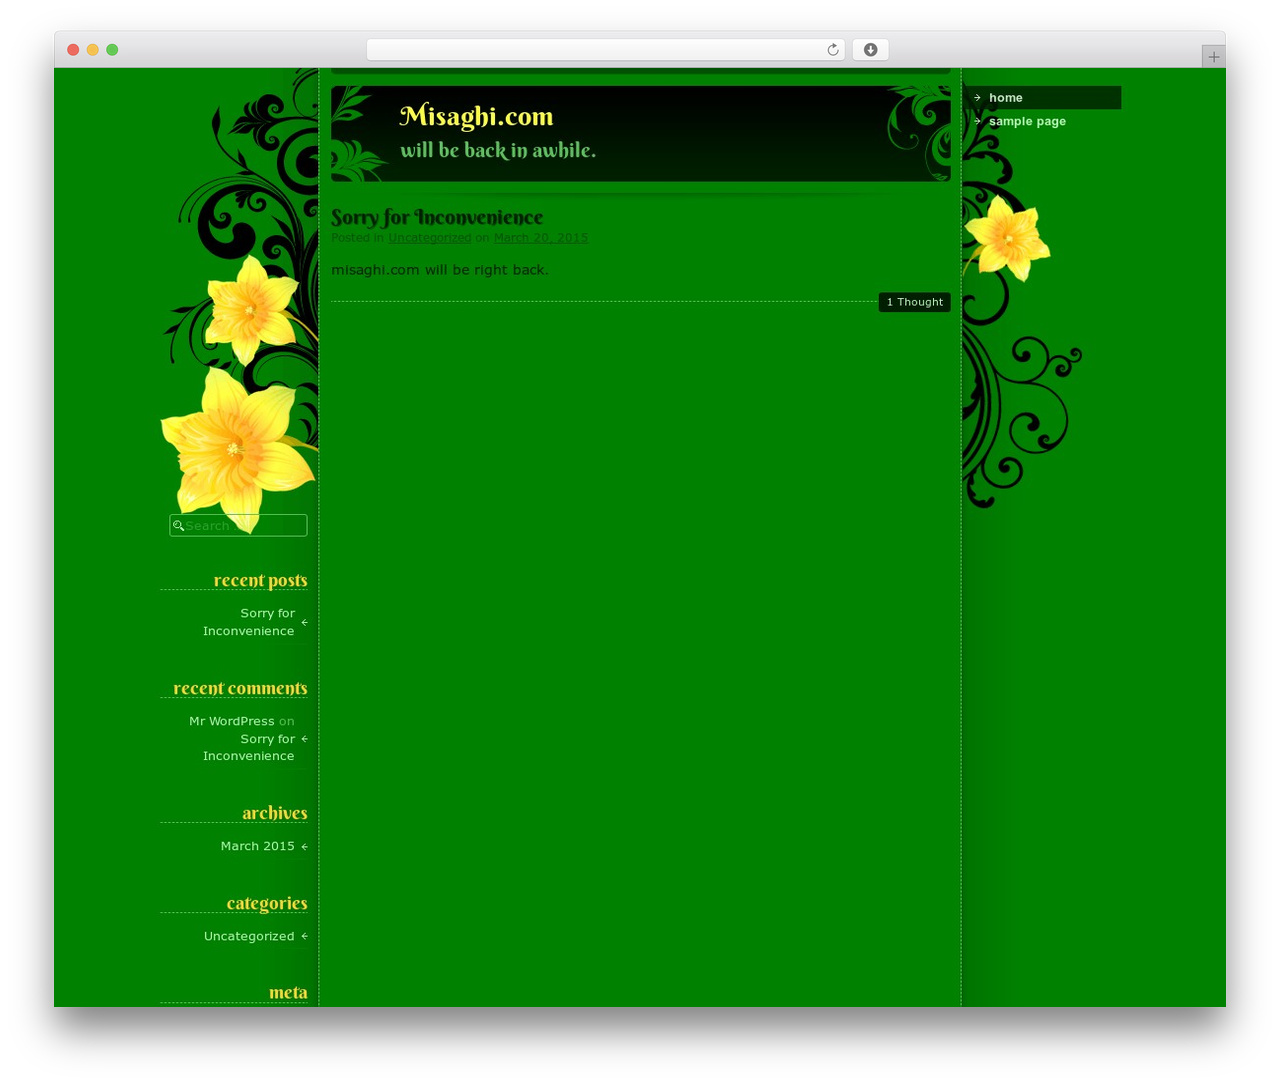 daffodil template wordpress by ying zhang misaghi com